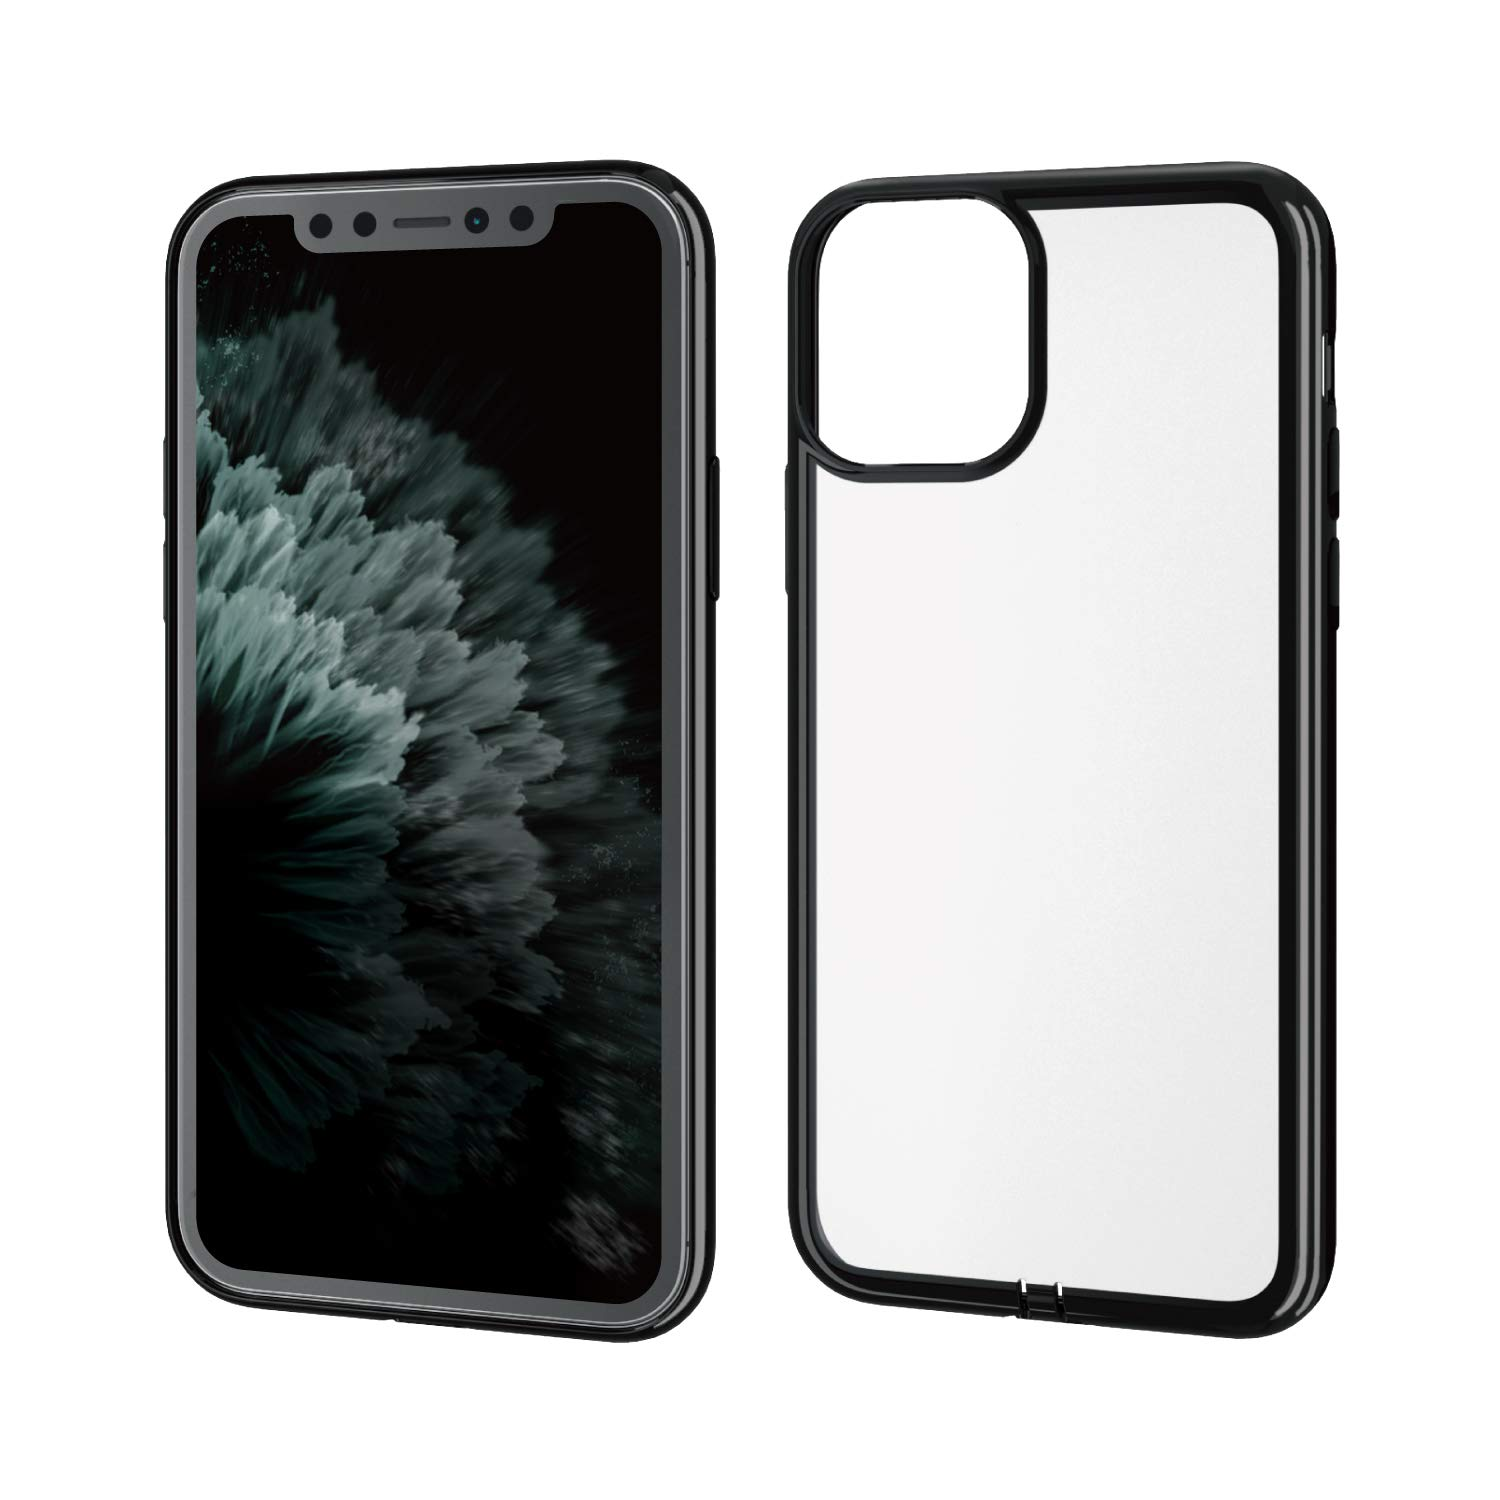 ELECOM-Japan Brand-Smartphone 極-Kiwami- Soft TPU Case with Side Plating Type Compatible with iPhone 11 Pro Black PM-A19BUCTMBK